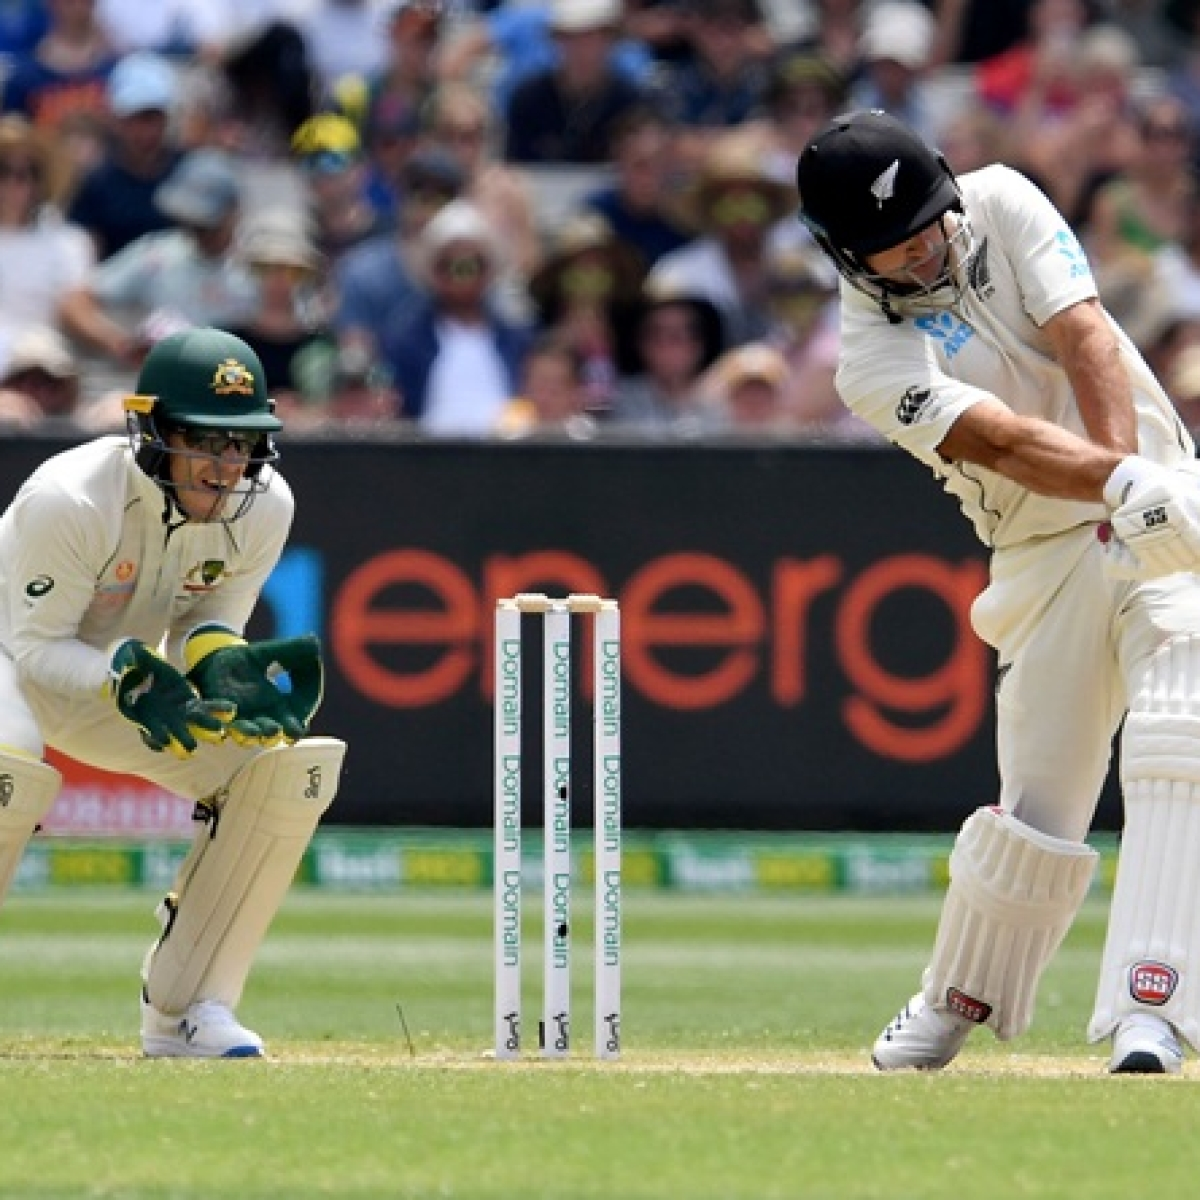 'He knows the bloke in the truck': Tim Paine's hilarious dig at Ross Taylor over LBW review